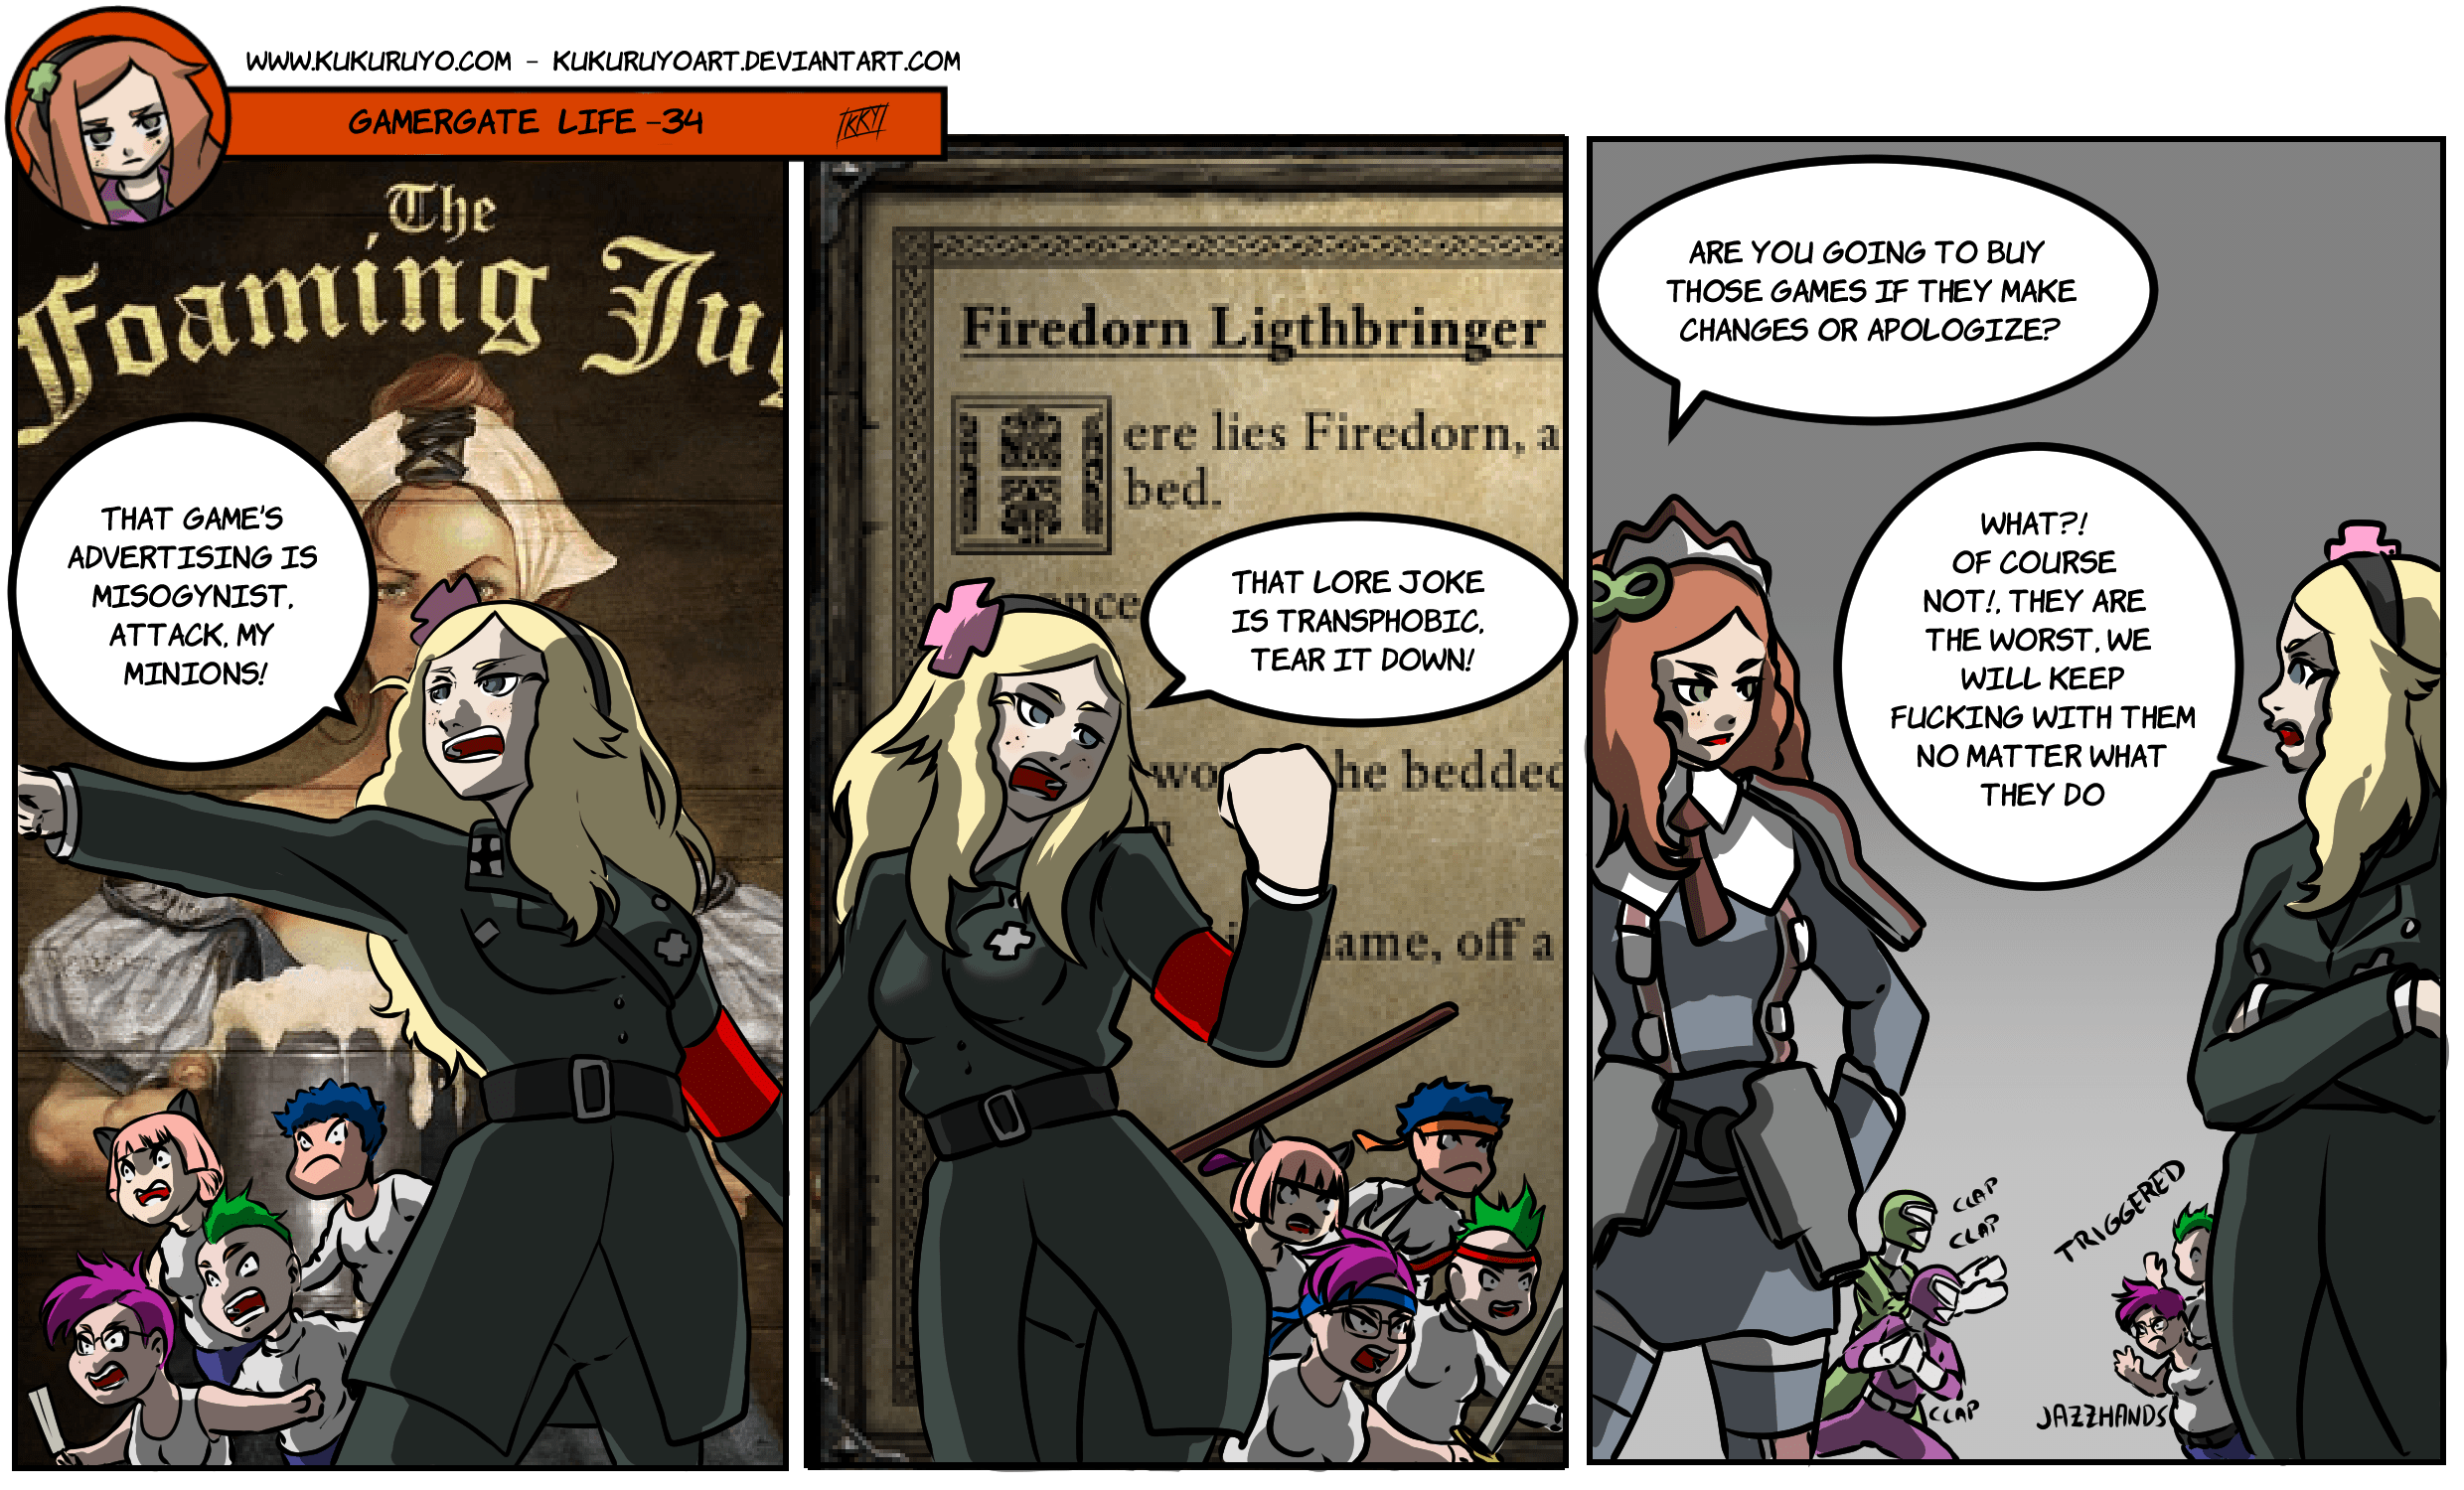 Gamergate life 34 (english)